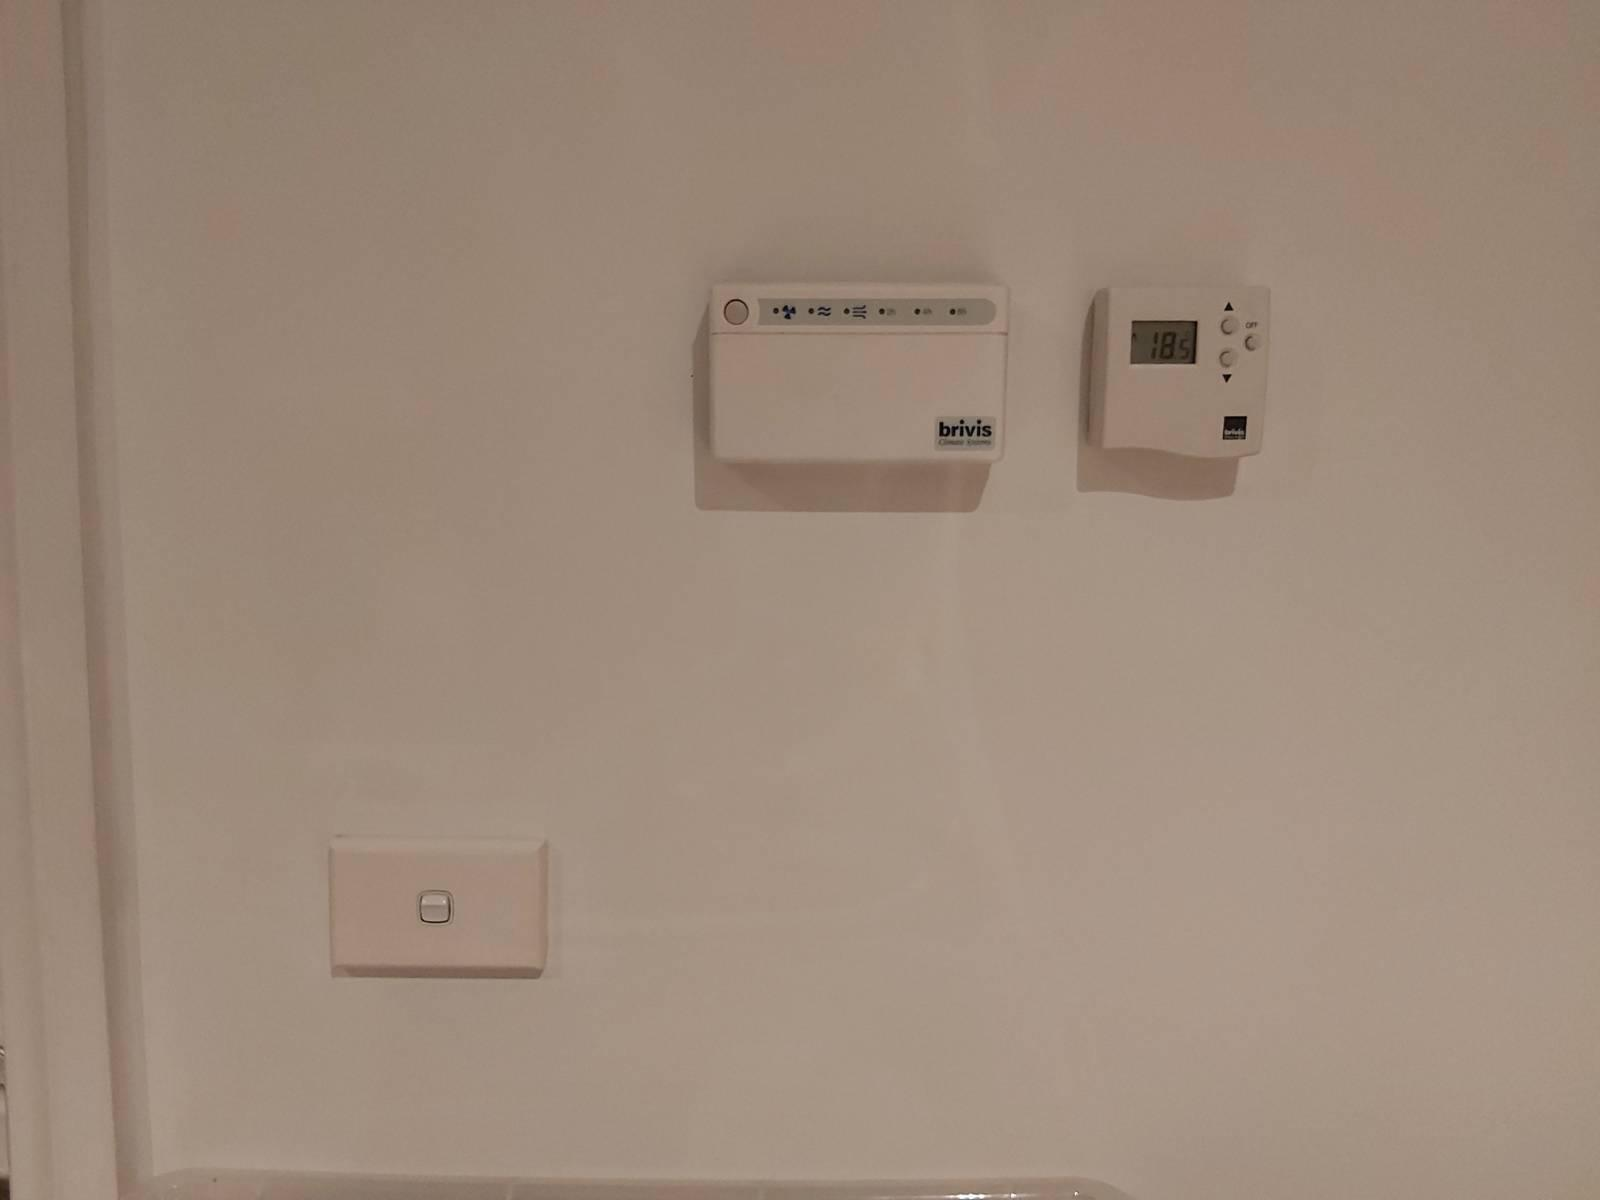 Relocating thermostat above light switch